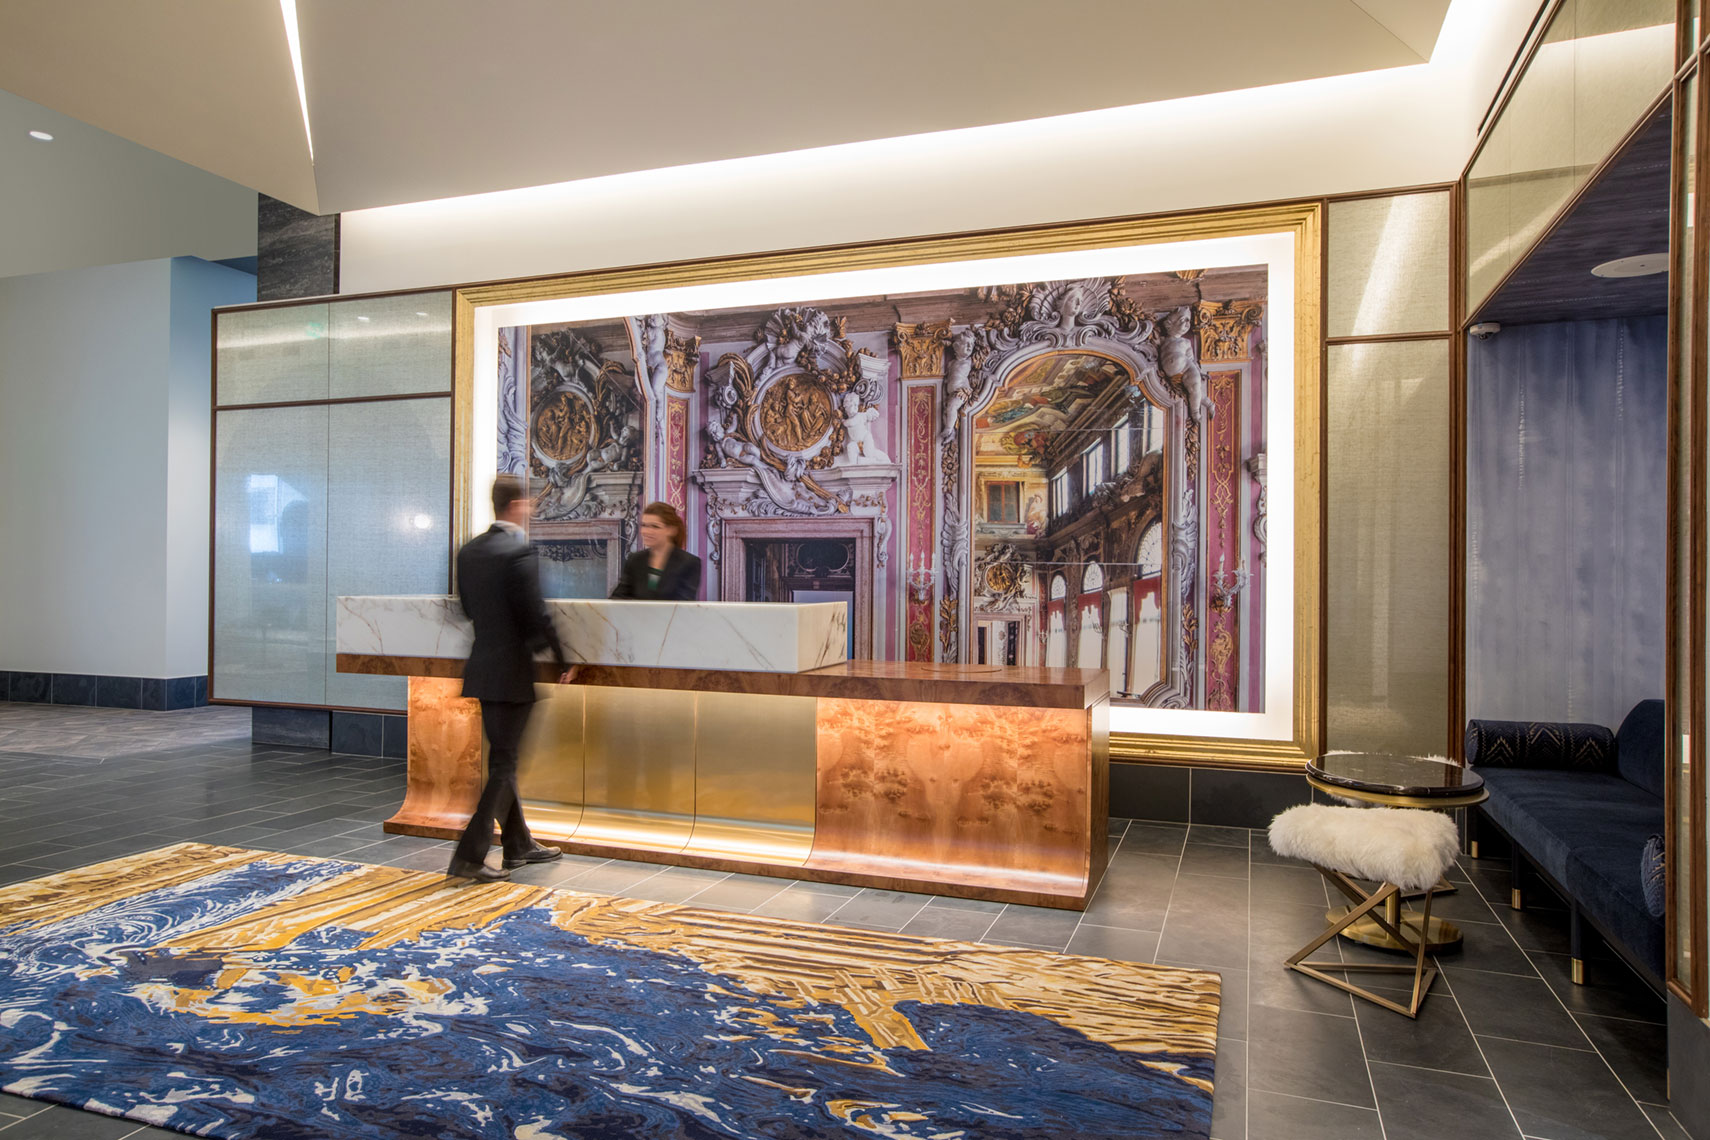 Hotel Alessandra reception desk at GreenStreet in Houston by Texas  Best Architectural Photographer